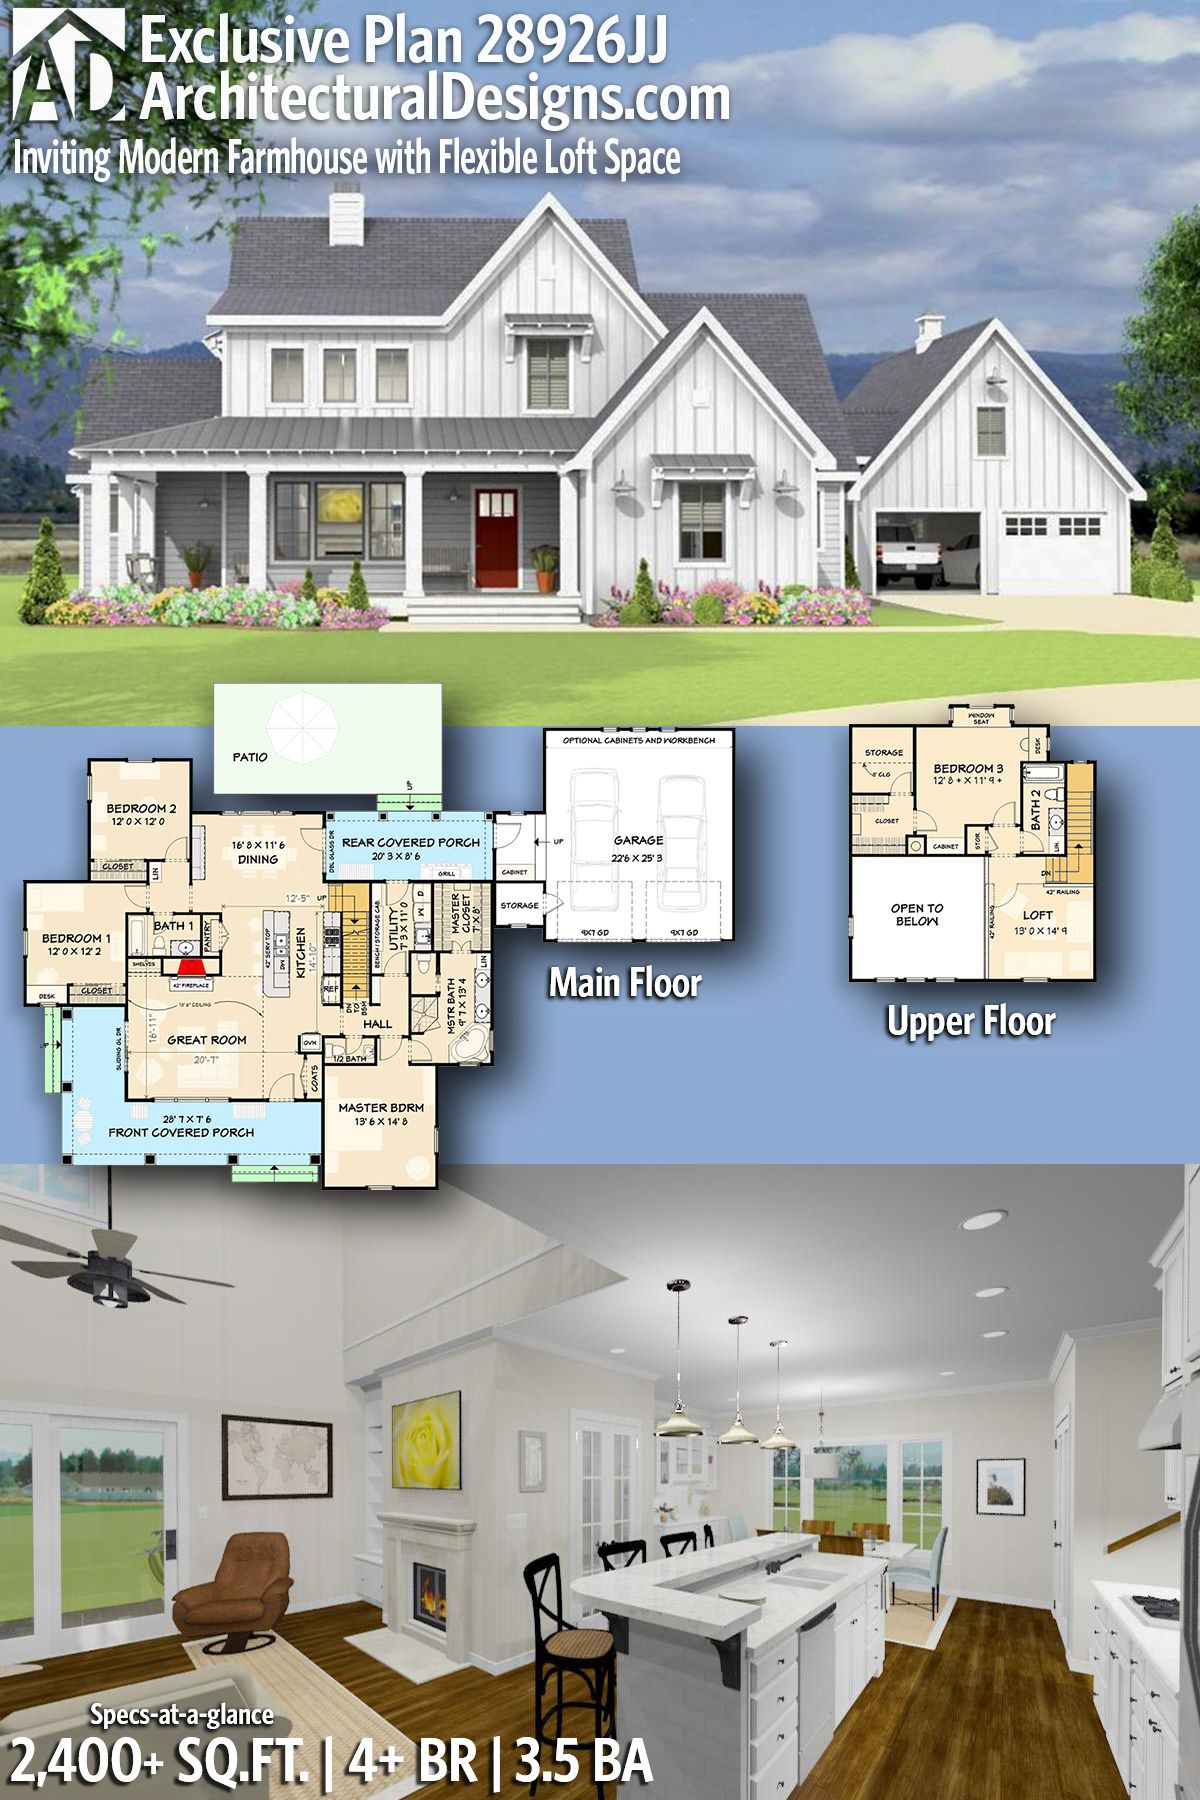 5 bedroom loft floor plans  Plan JJ Inviting and Exclusive Farmhouse with Flexible Loft